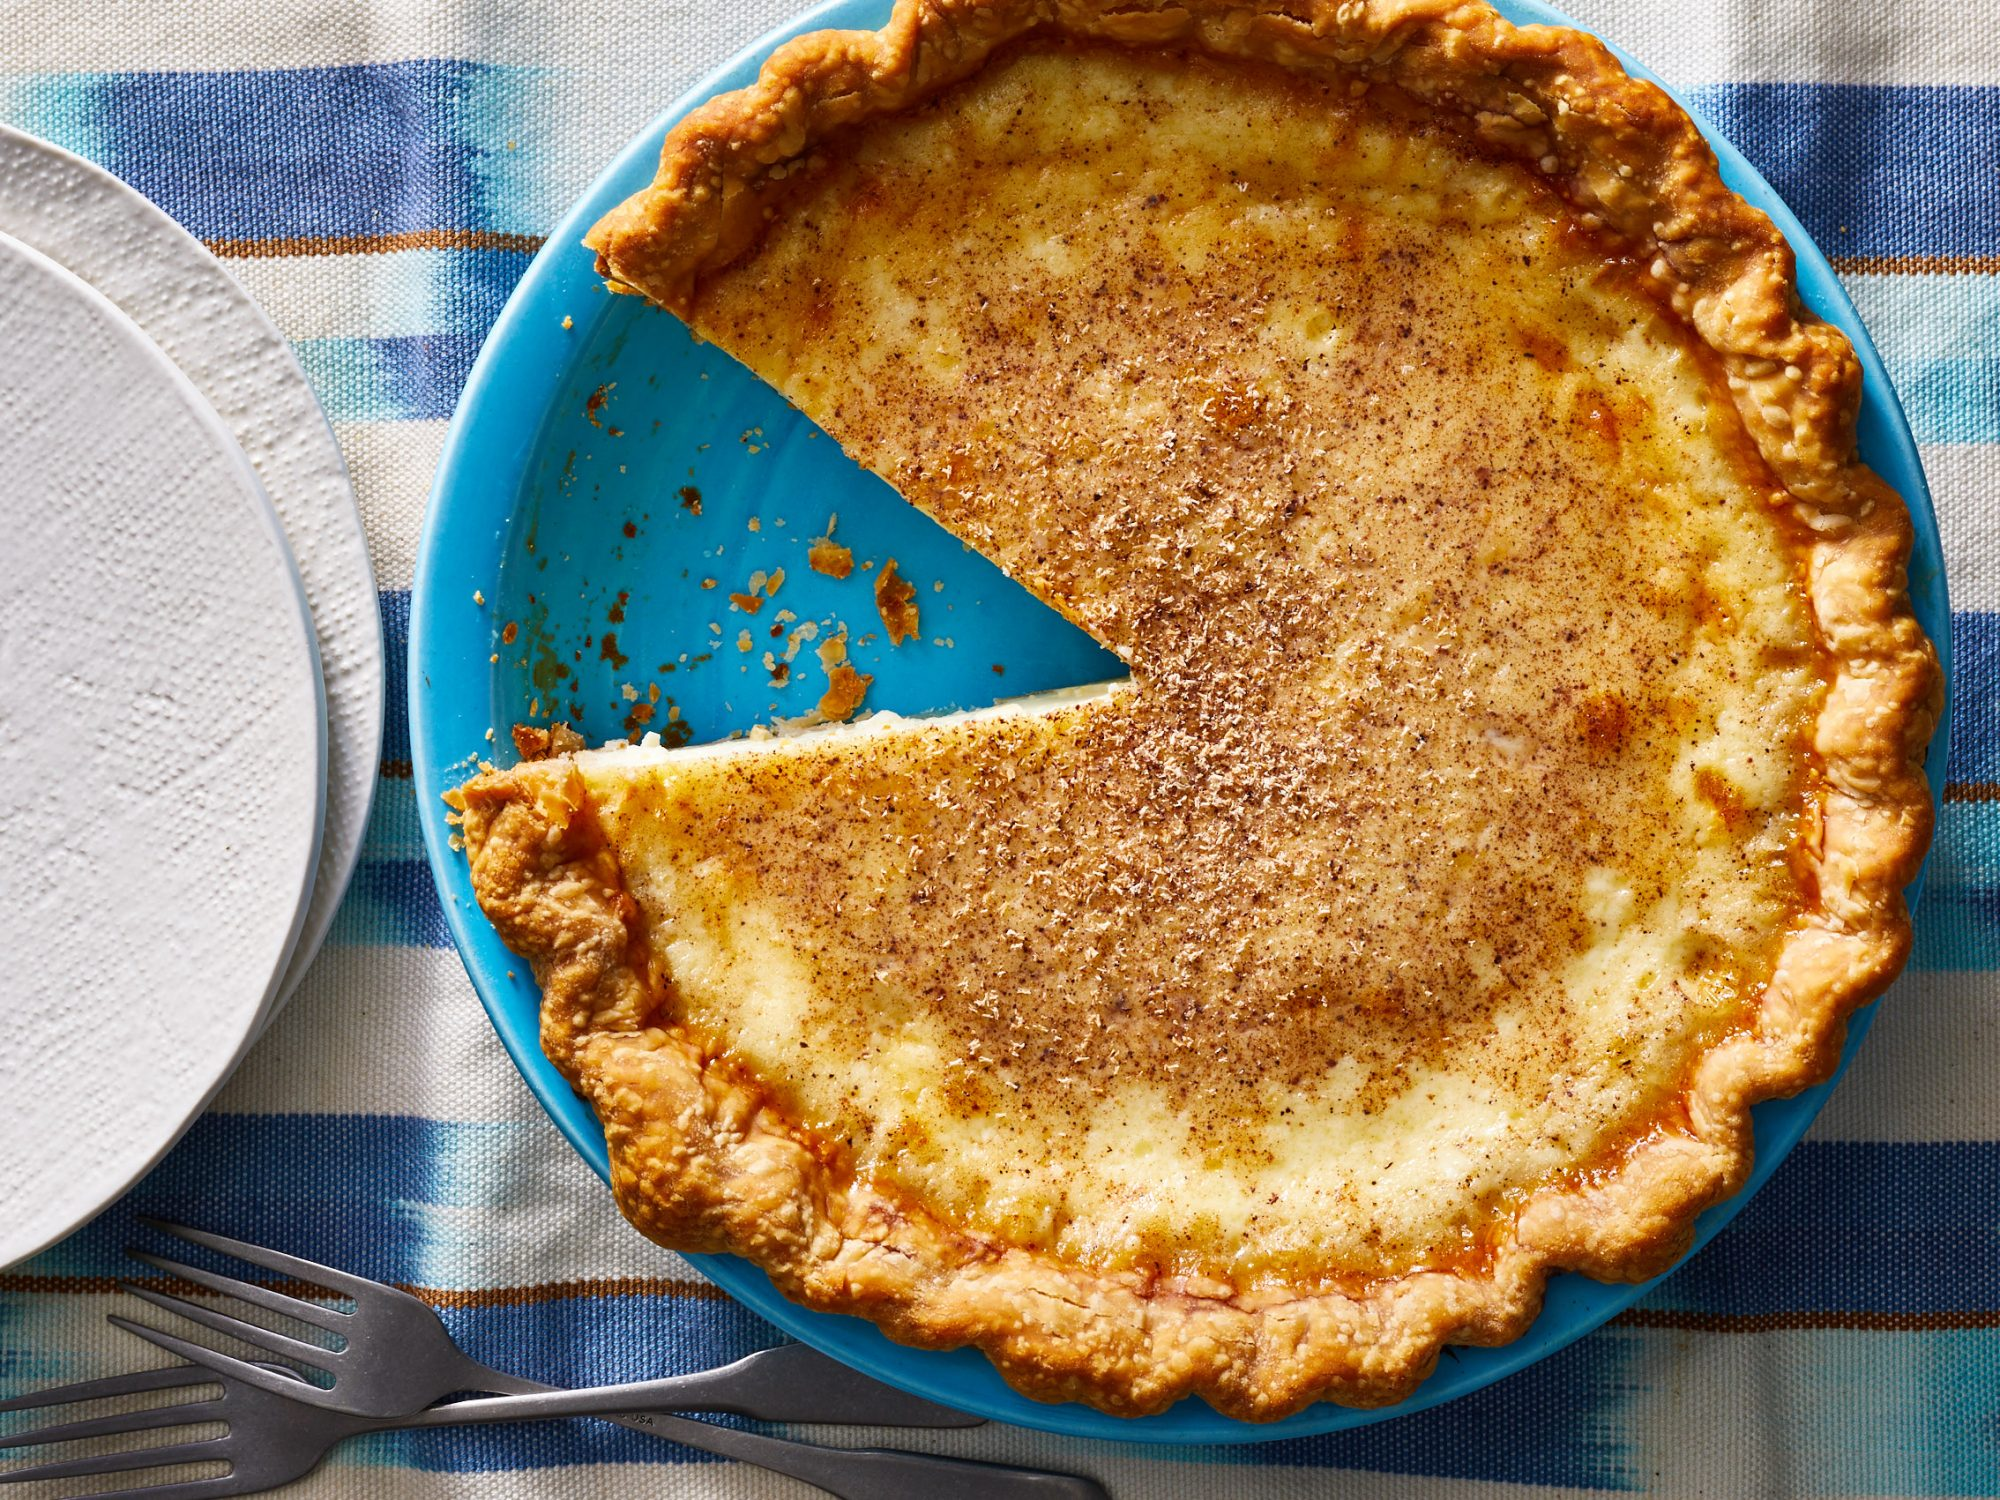 April: Egg Custard Pie